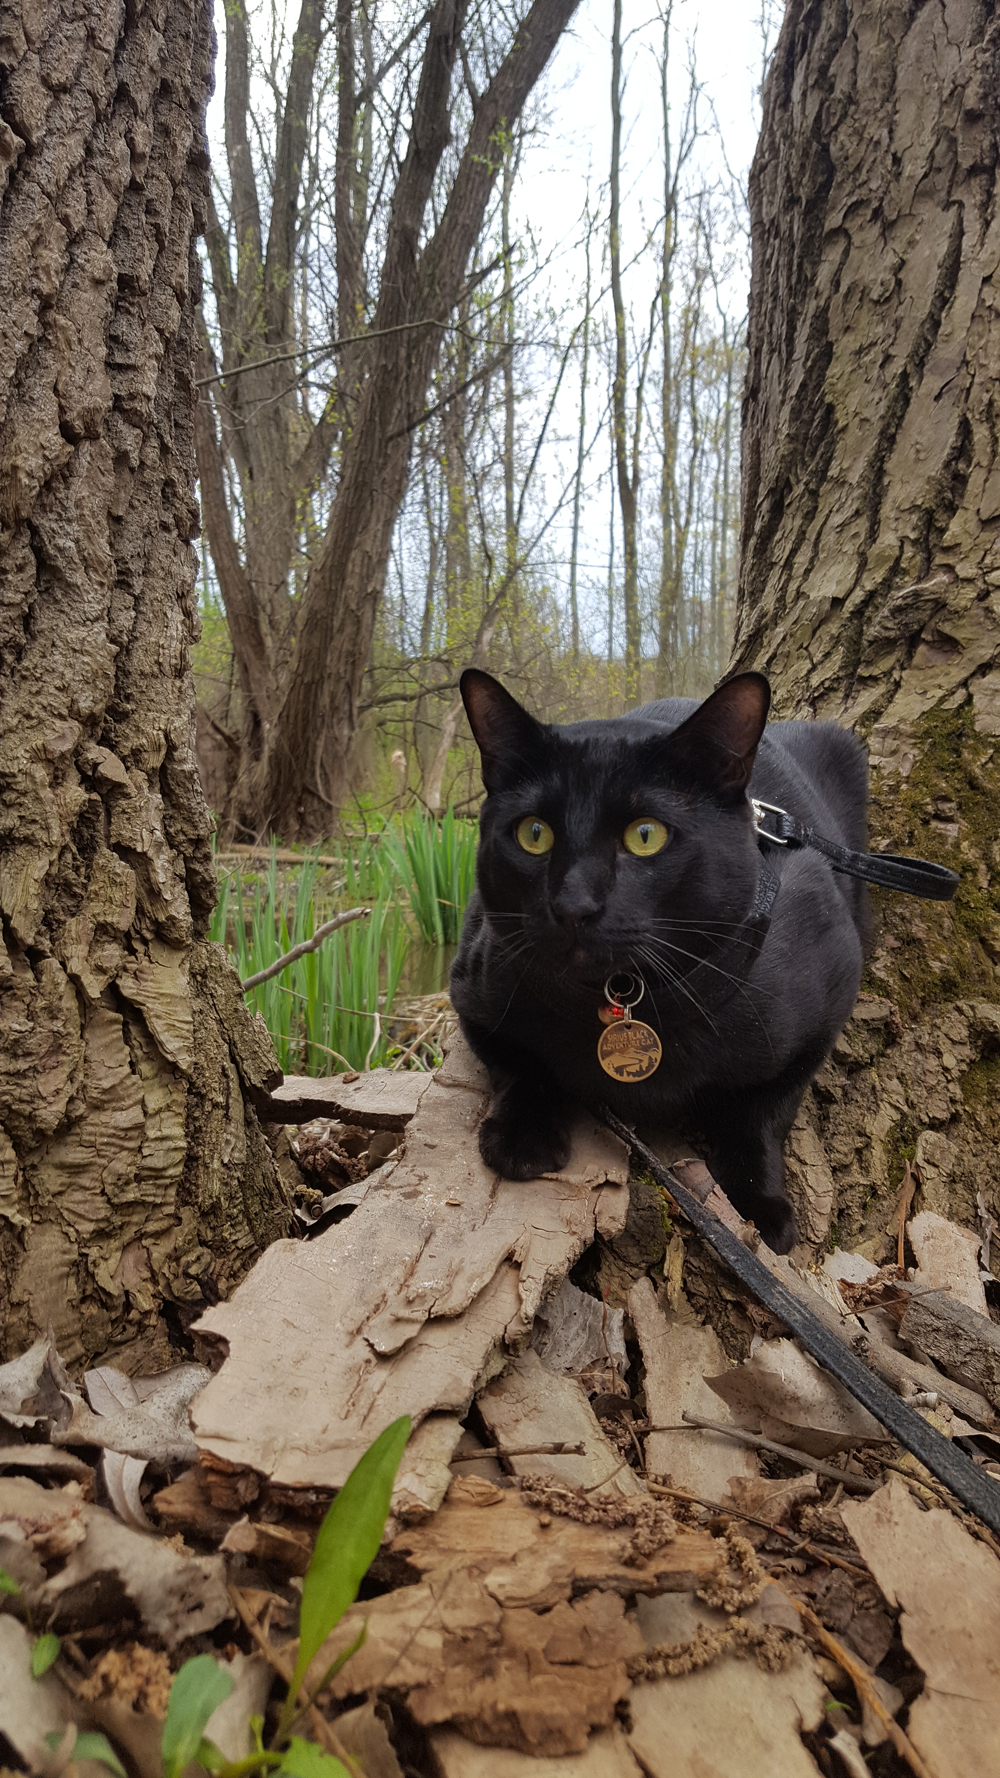 Sirius Black is on the prowl in the woods.